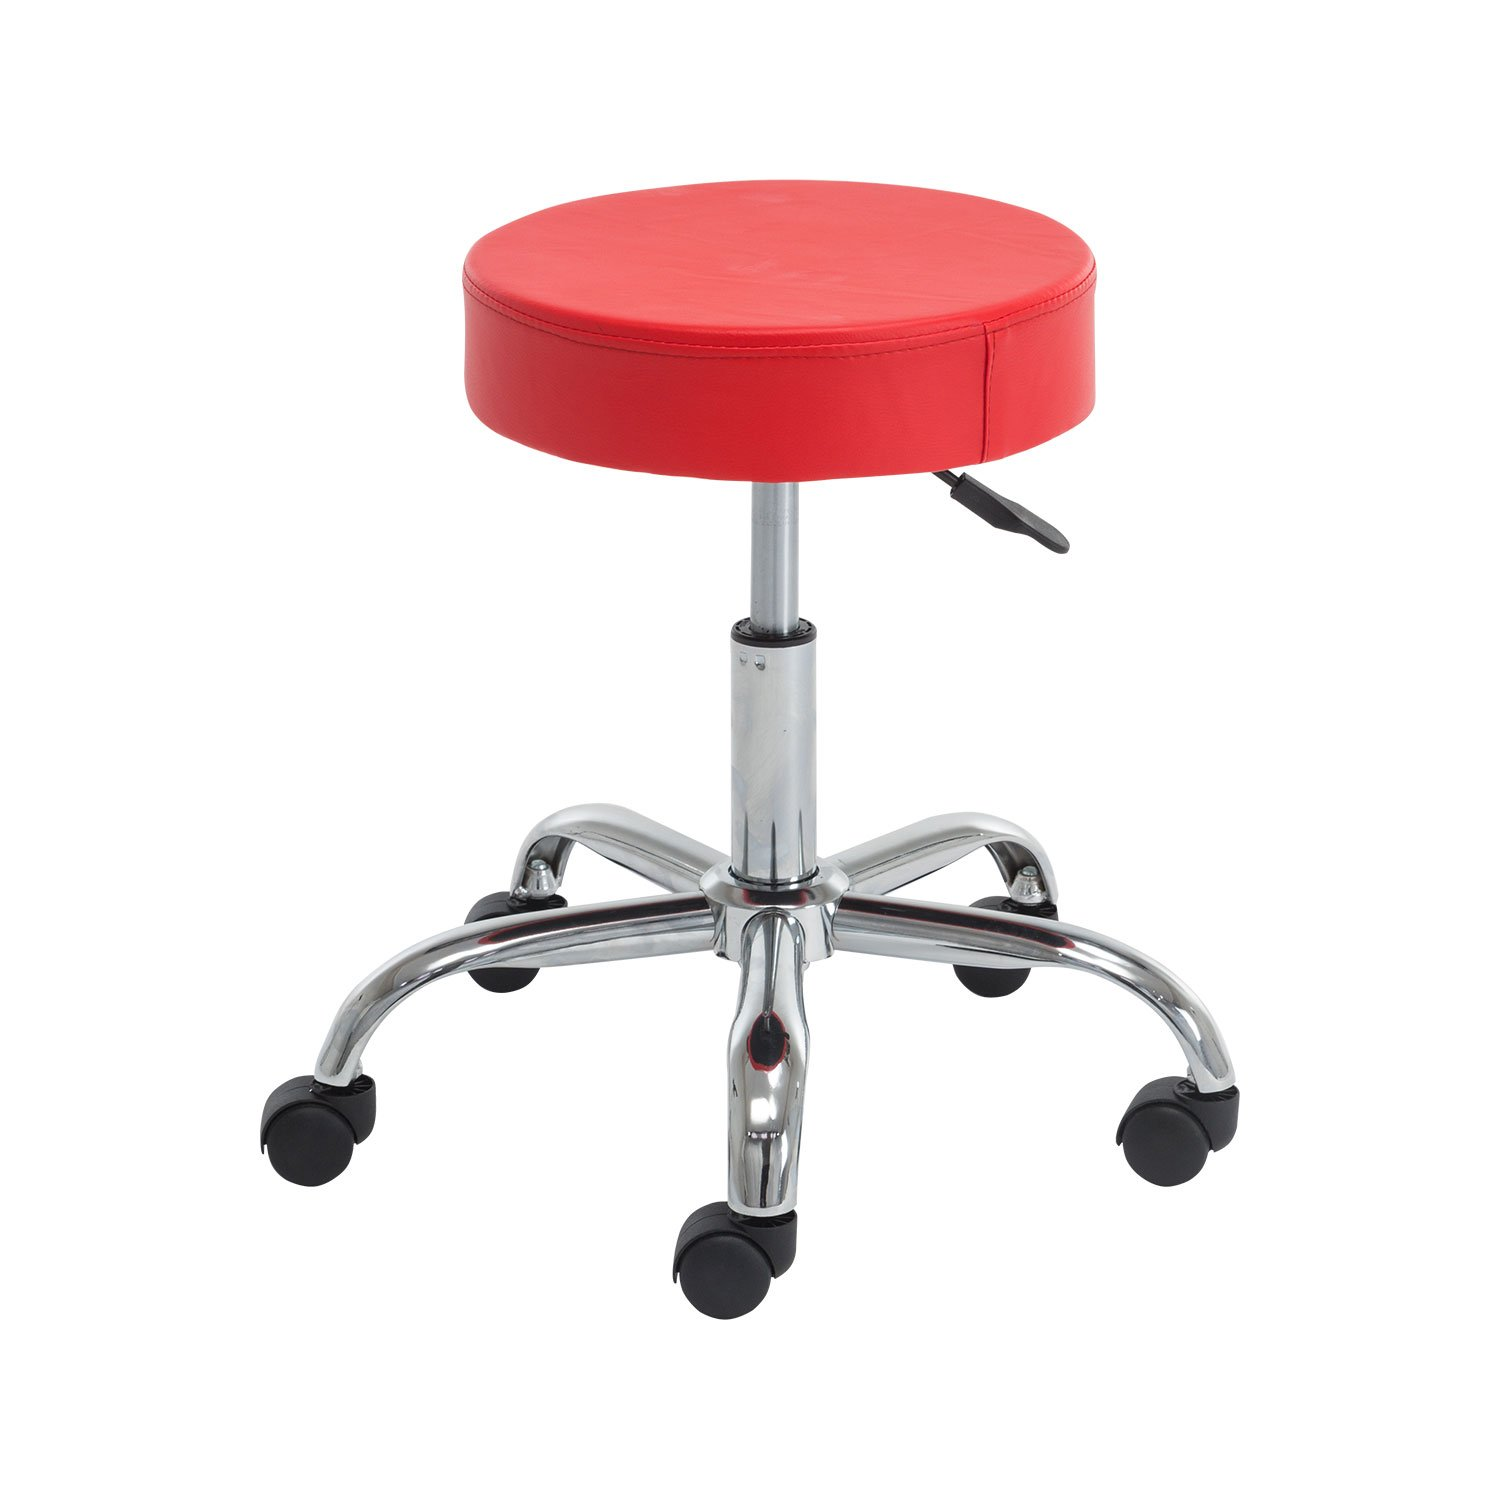 Polorim Rolling Chairs Height Adjustable PU Leather c Massage Spa Stool (red)